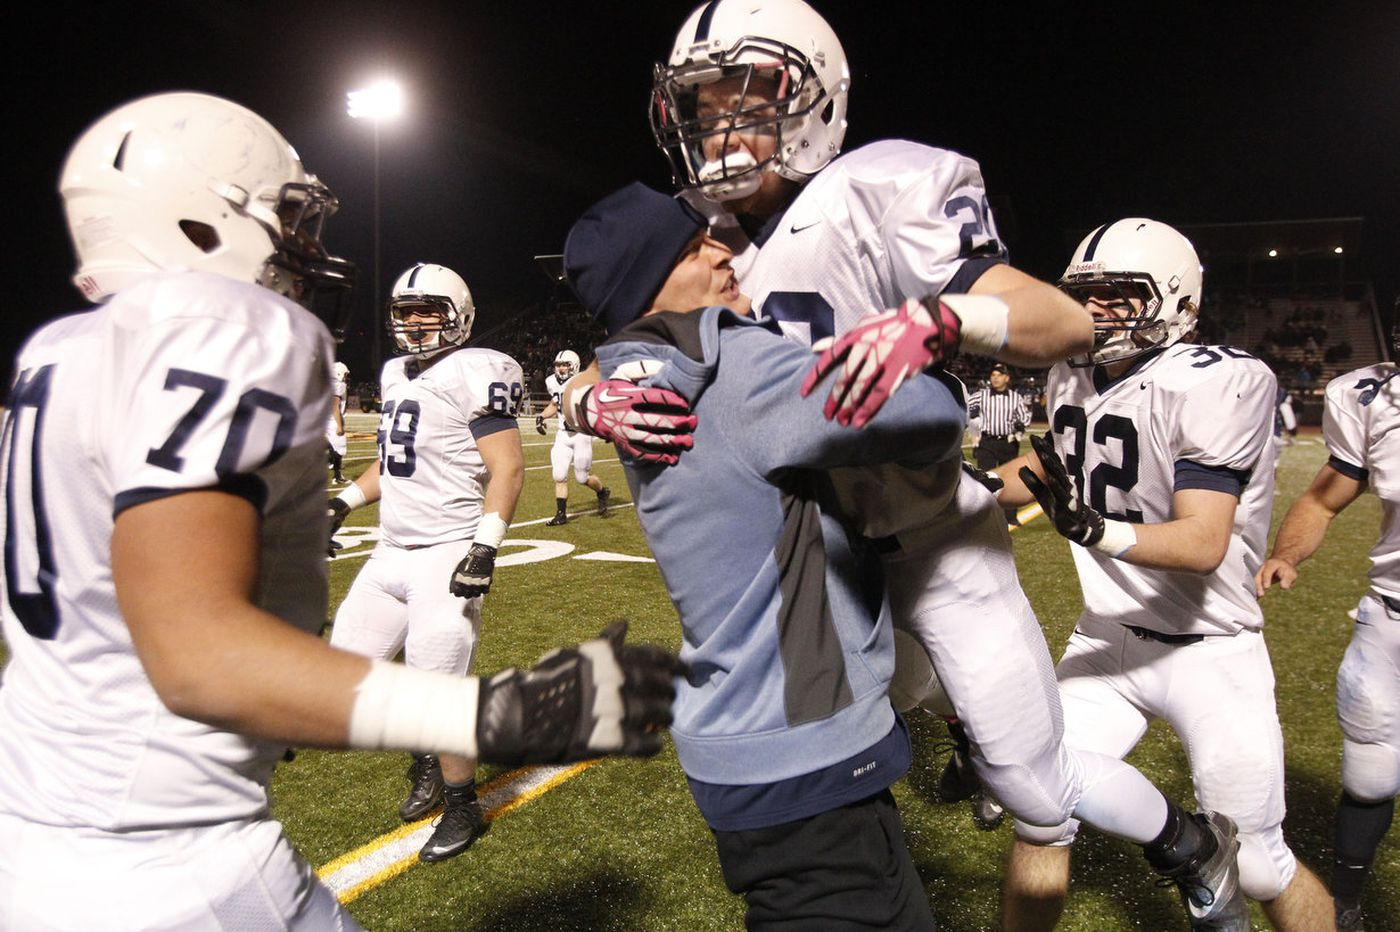 Shawnee's upset closes championship day in style